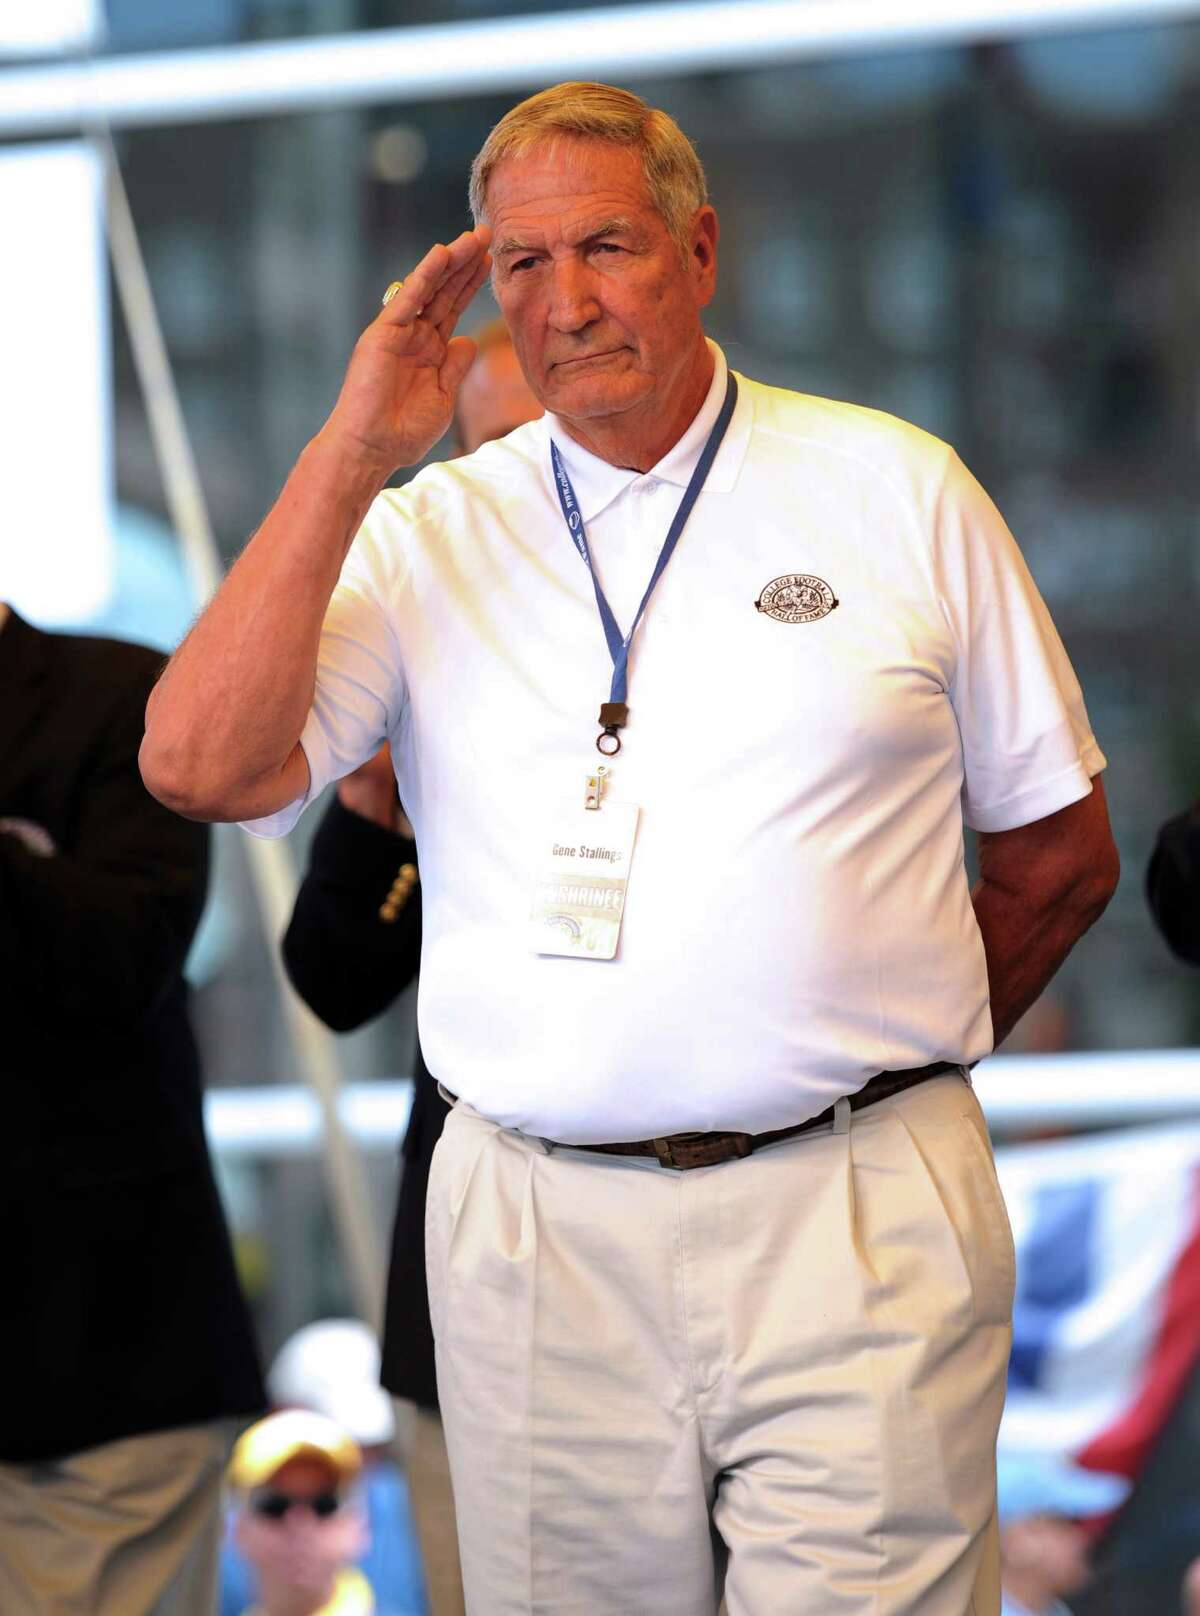 Coach Gene Stallings, Texas A&M 1965-71 and Alabama 1990-96, salutes the crowd prior to receiving his blazer during the College Football Hall of Fame Enshrinement Festival in South Bend, Ind., on Saturday, July 16, 2011. (AP Photo/Joe Raymond)